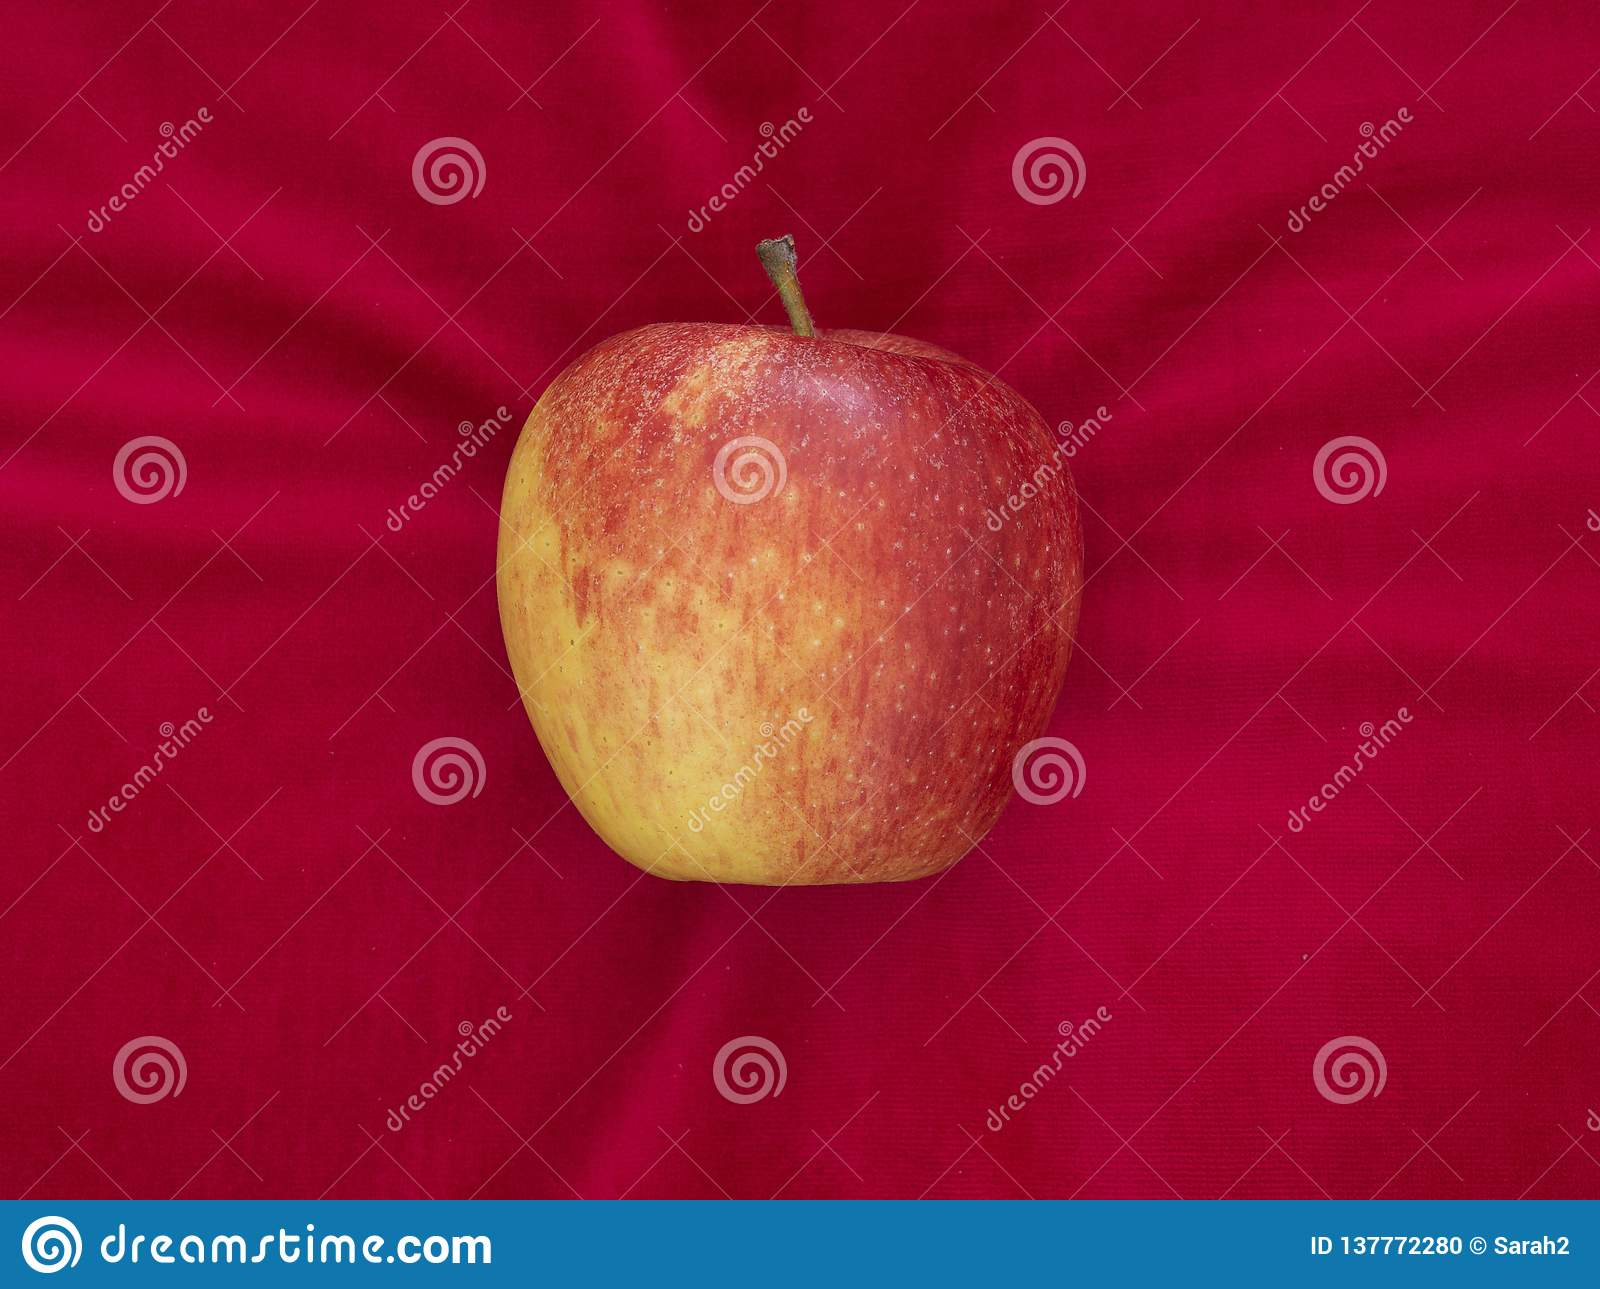 Apple on red velvet cushion, temptation or luxury, with copyspace.